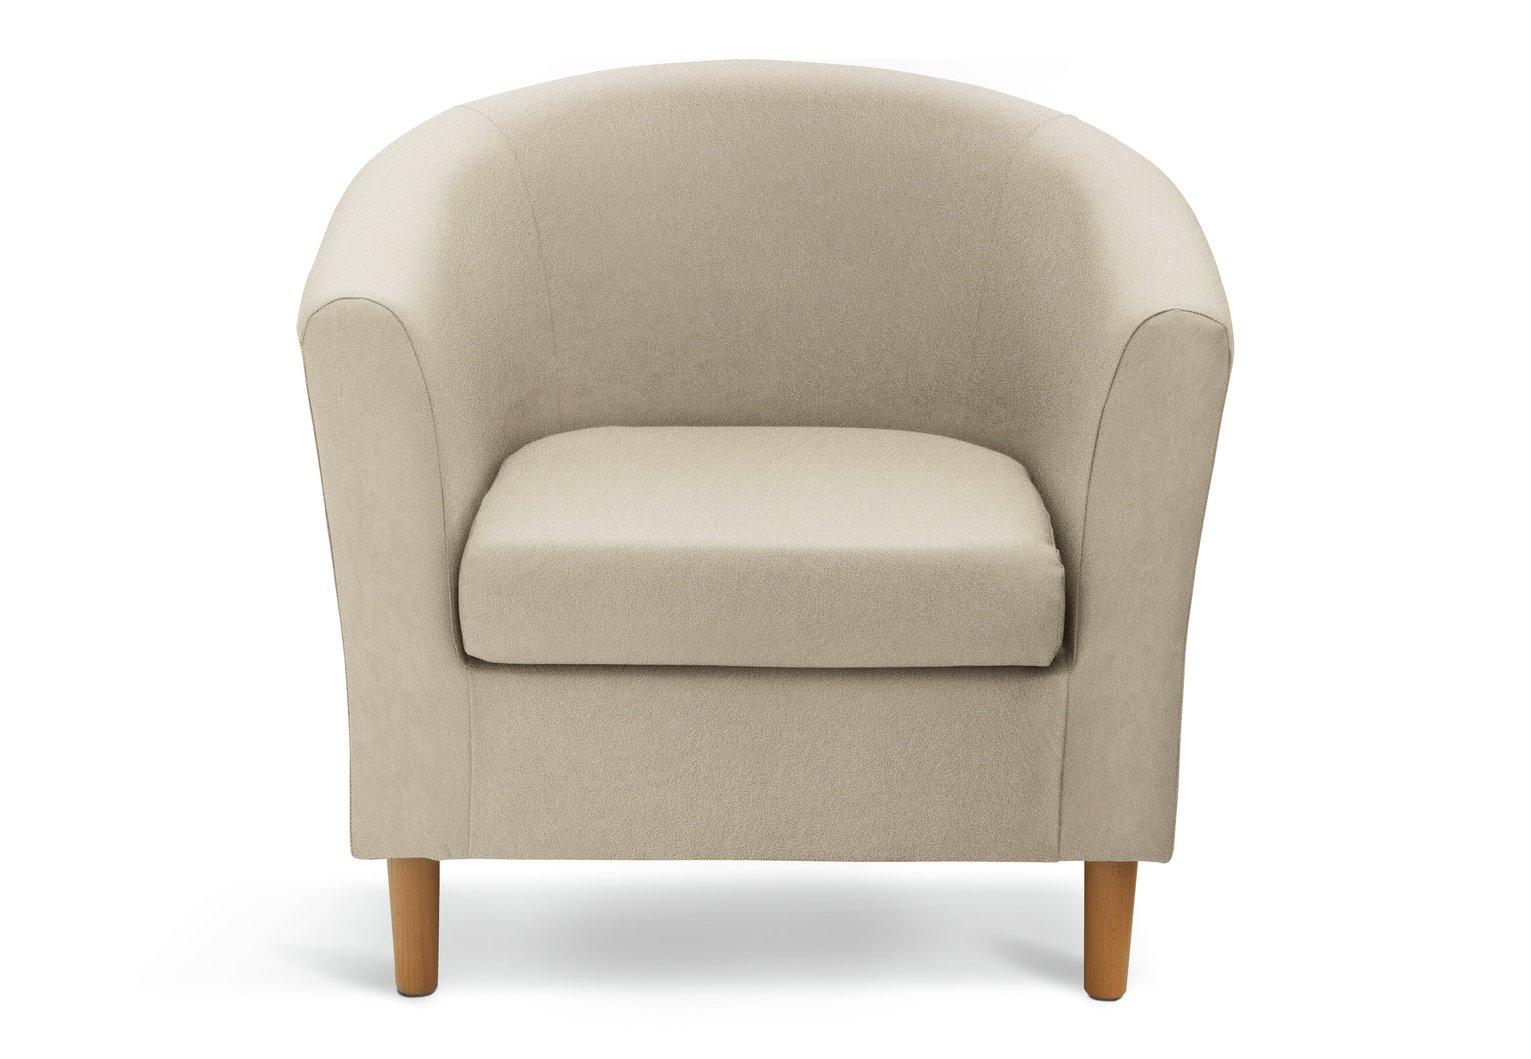 tub chair covers for sale reading room chairs buy argos home fabric mocha armchairs and